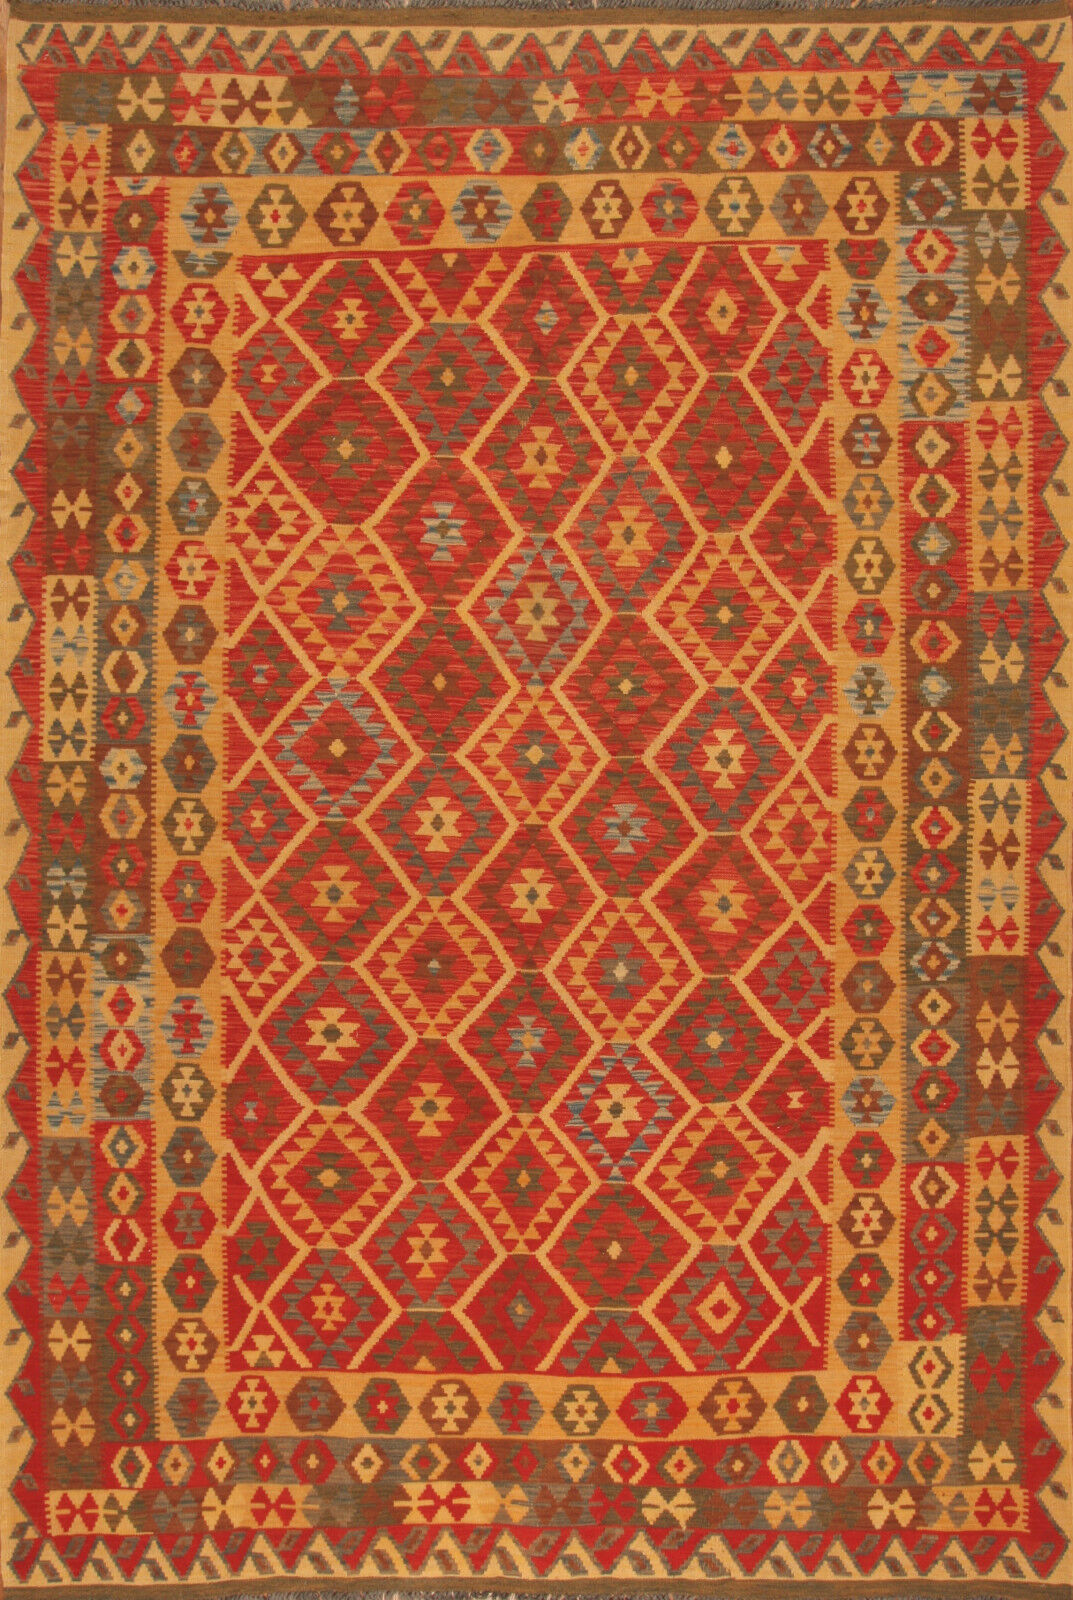 TAPPETO Orientale tessute a mano Kilim Afghanistan n. 82616 (305 x 206) cm Nuovo